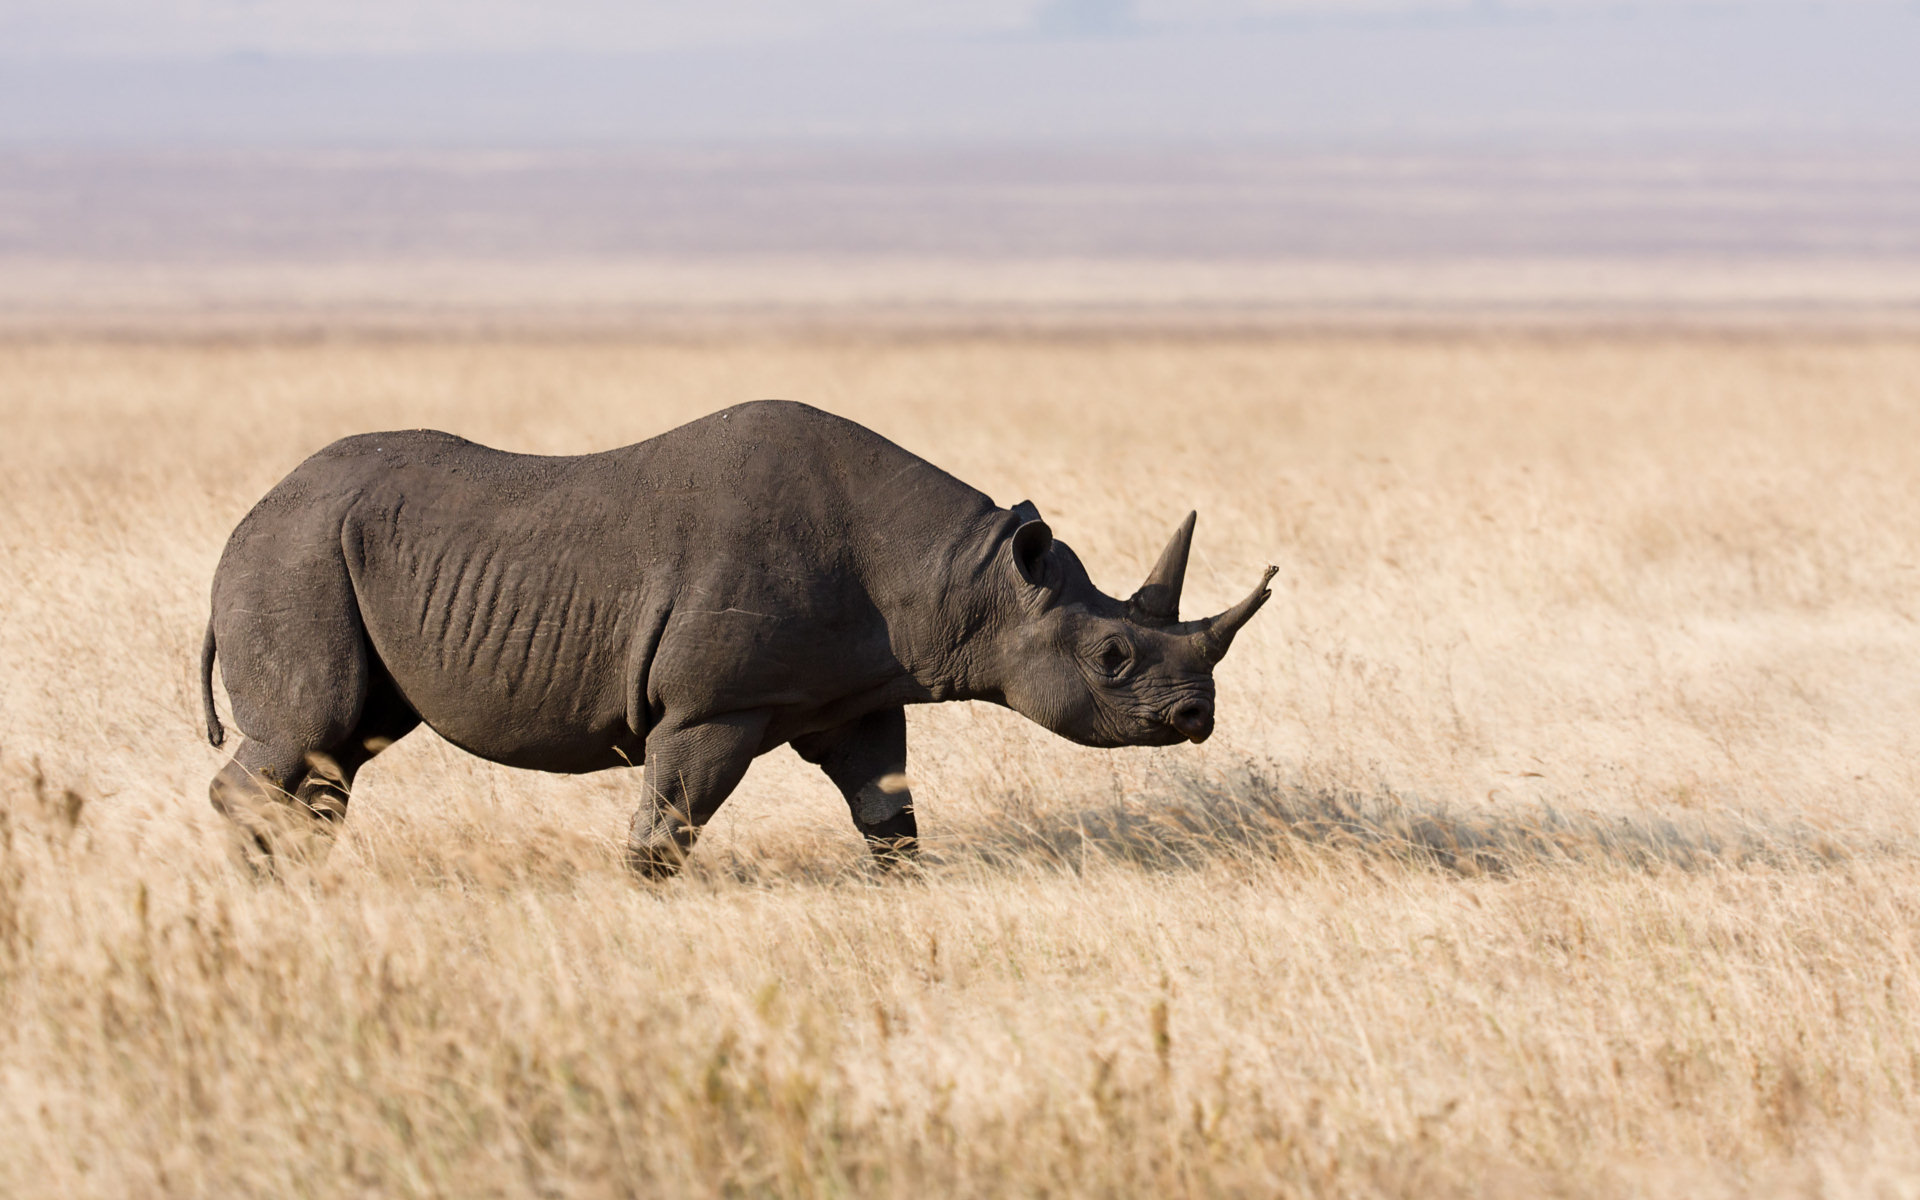 Free download Rhino wallpaper ID:20090 hd 1920x1200 for computer